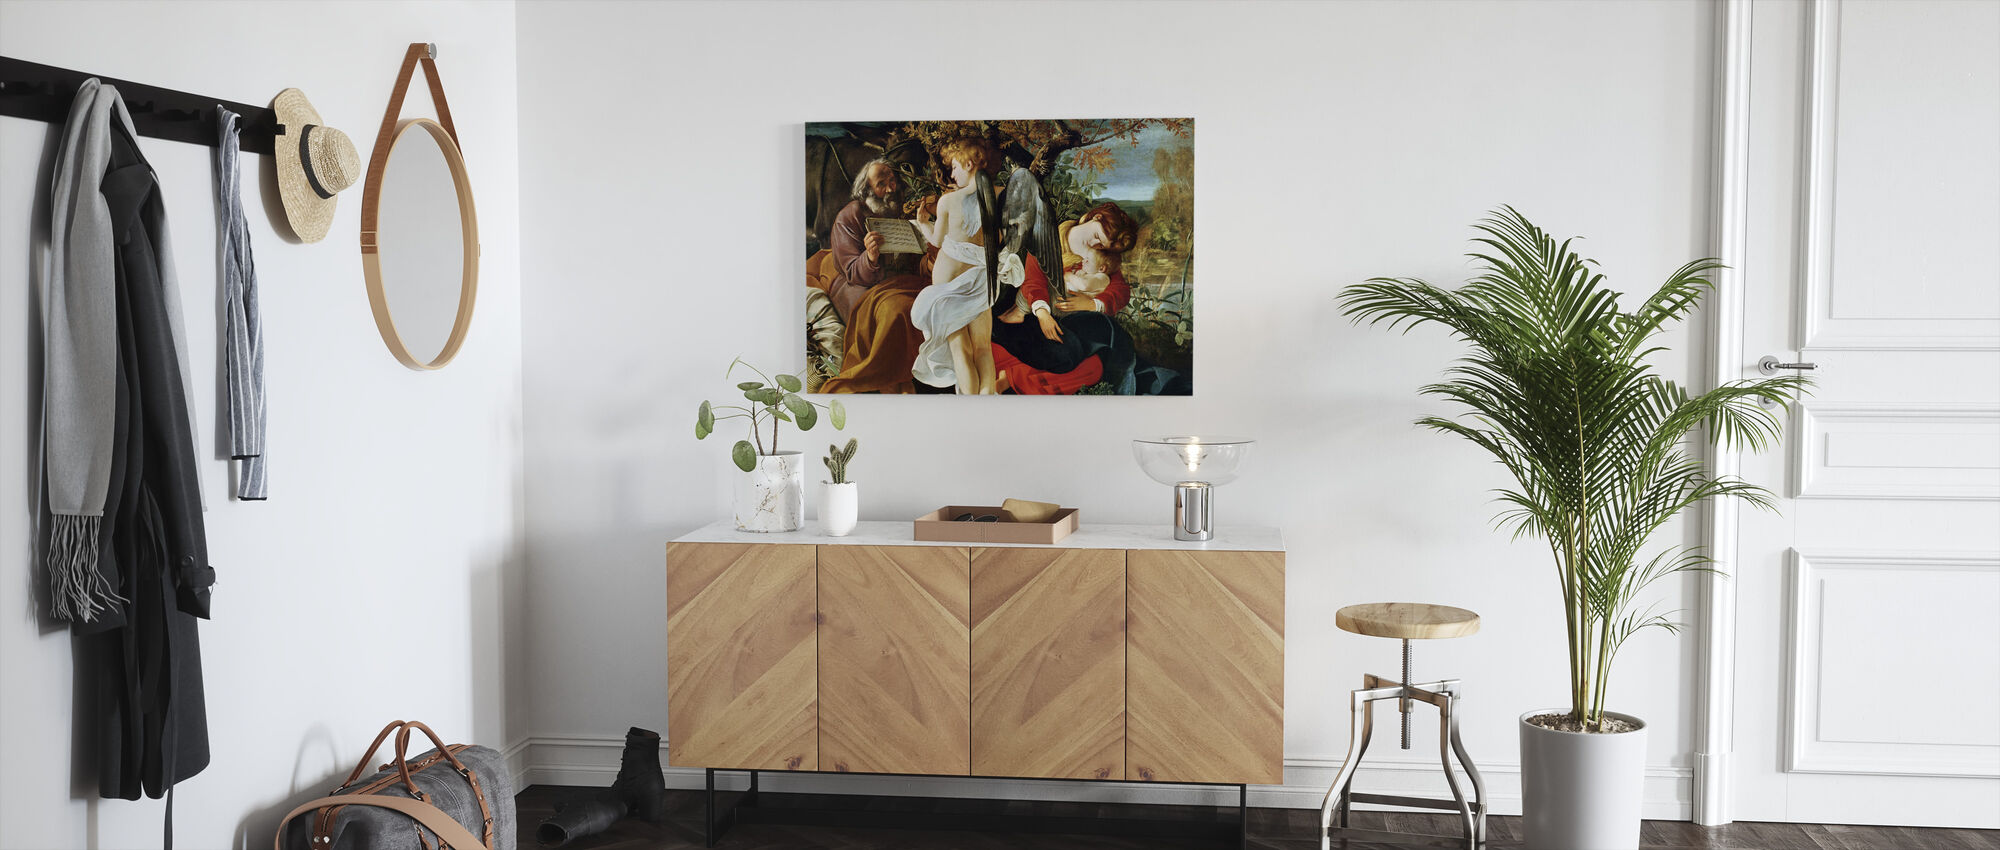 Rest on the Flight into Egypt - Michelangelo Merisi da Caravaggio - Canvas print - Hallway